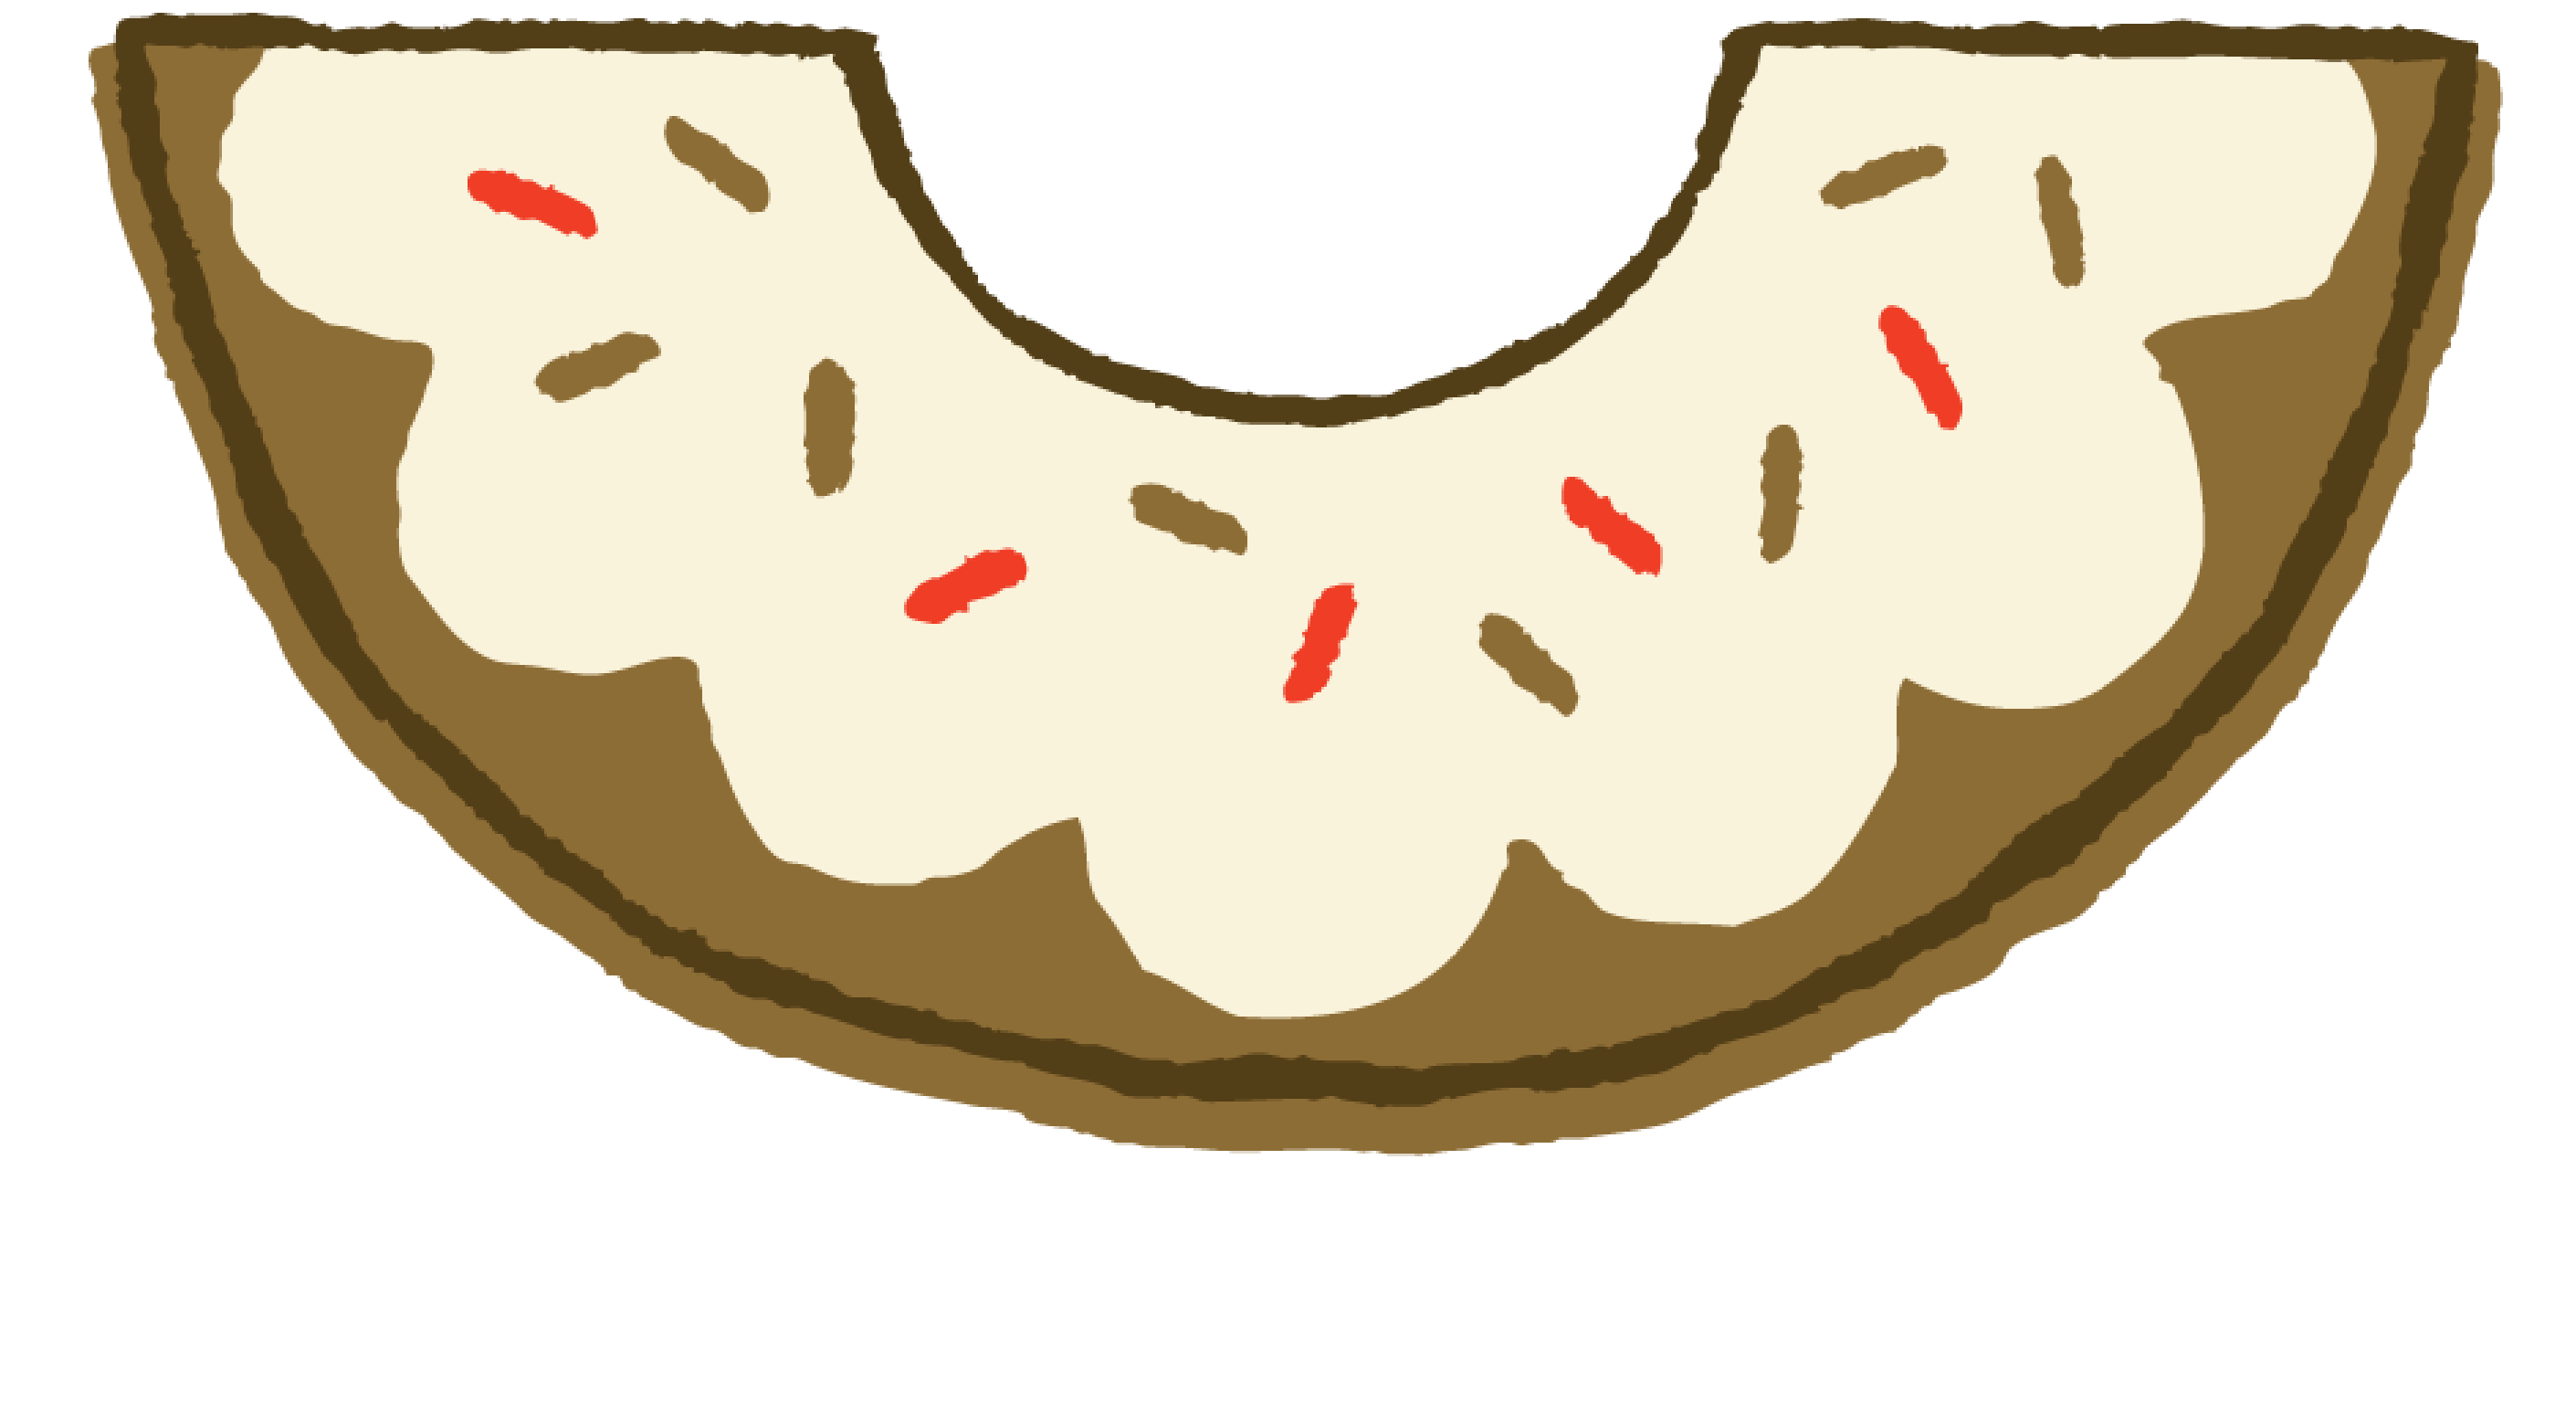 Doughnut free on dumielauxepices. Clipart coffee snack